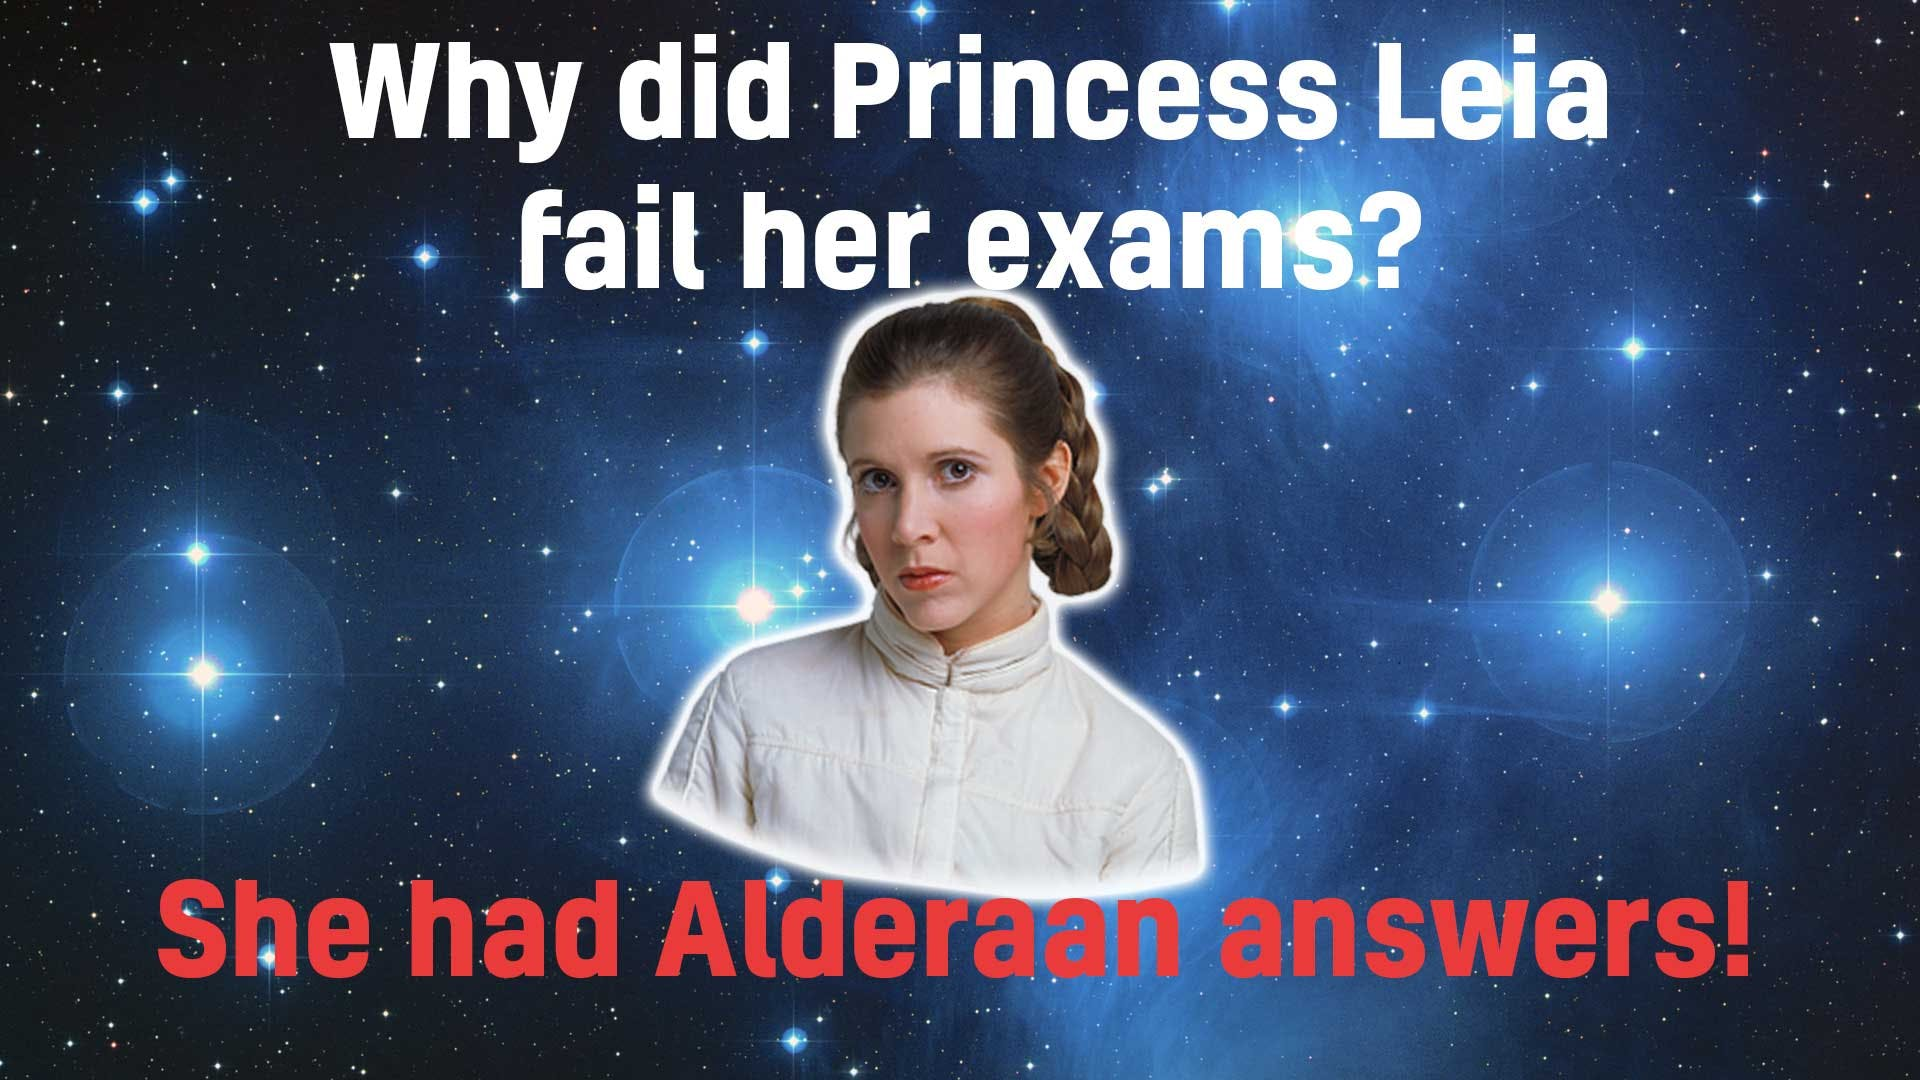 Why did Princess Leia fail her exams?